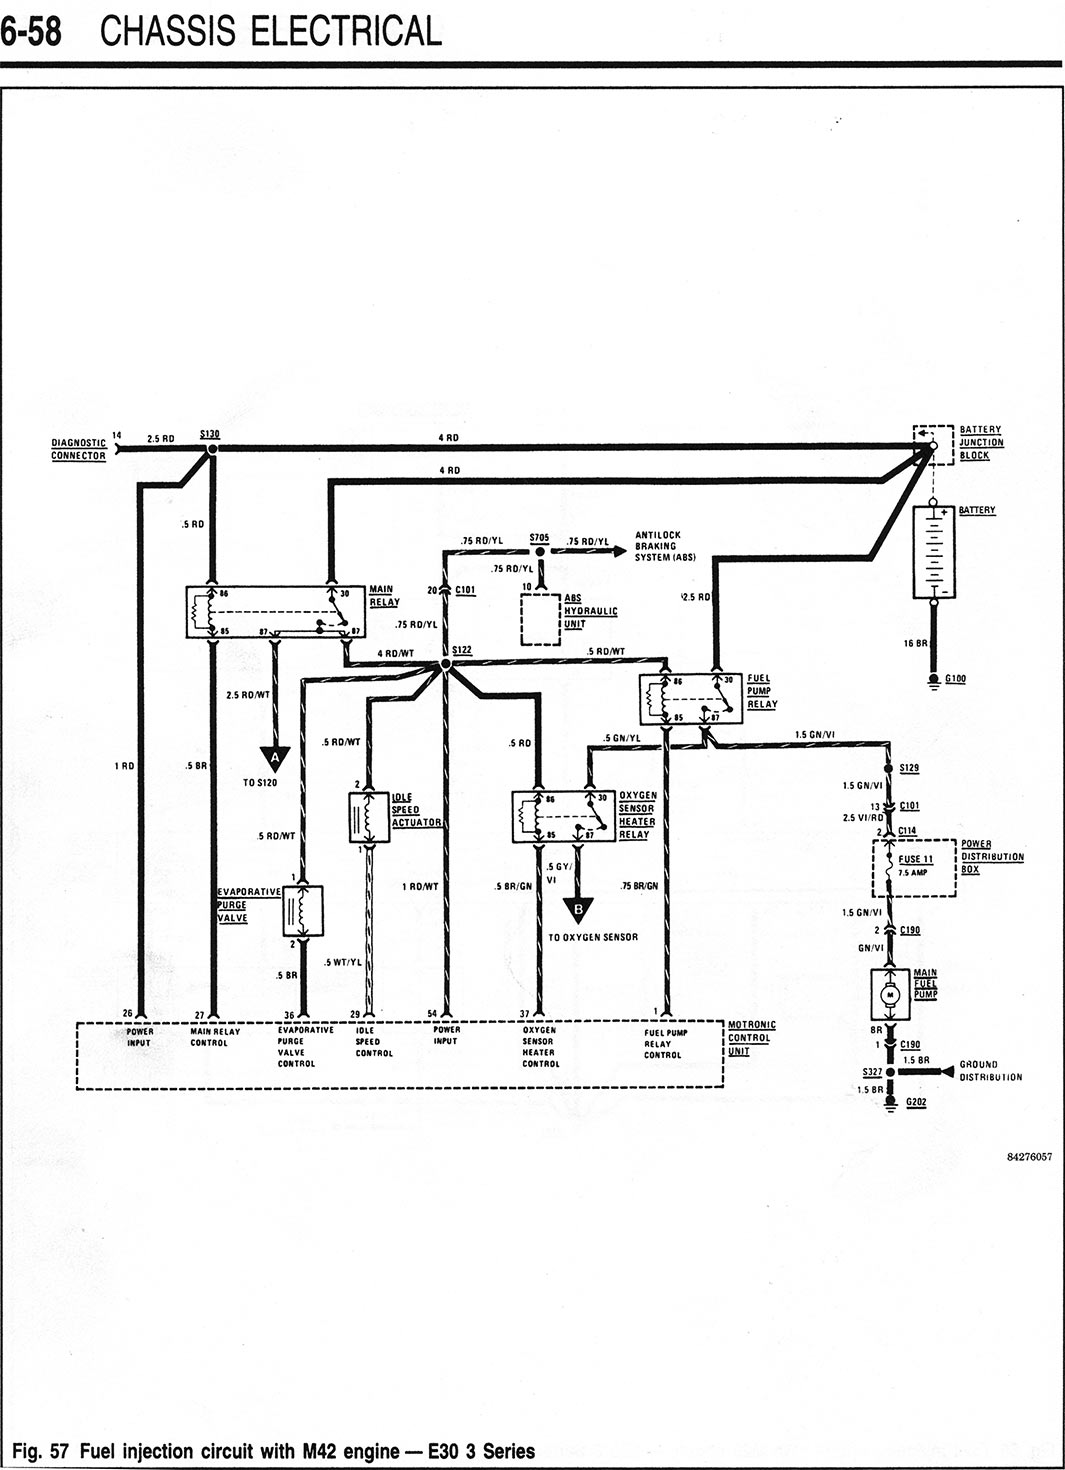 hight resolution of bmw e46 n42 wiring diagram wiring diagrams scematic 1984 jeep wiring diagram 1984 bmw wiring diagram